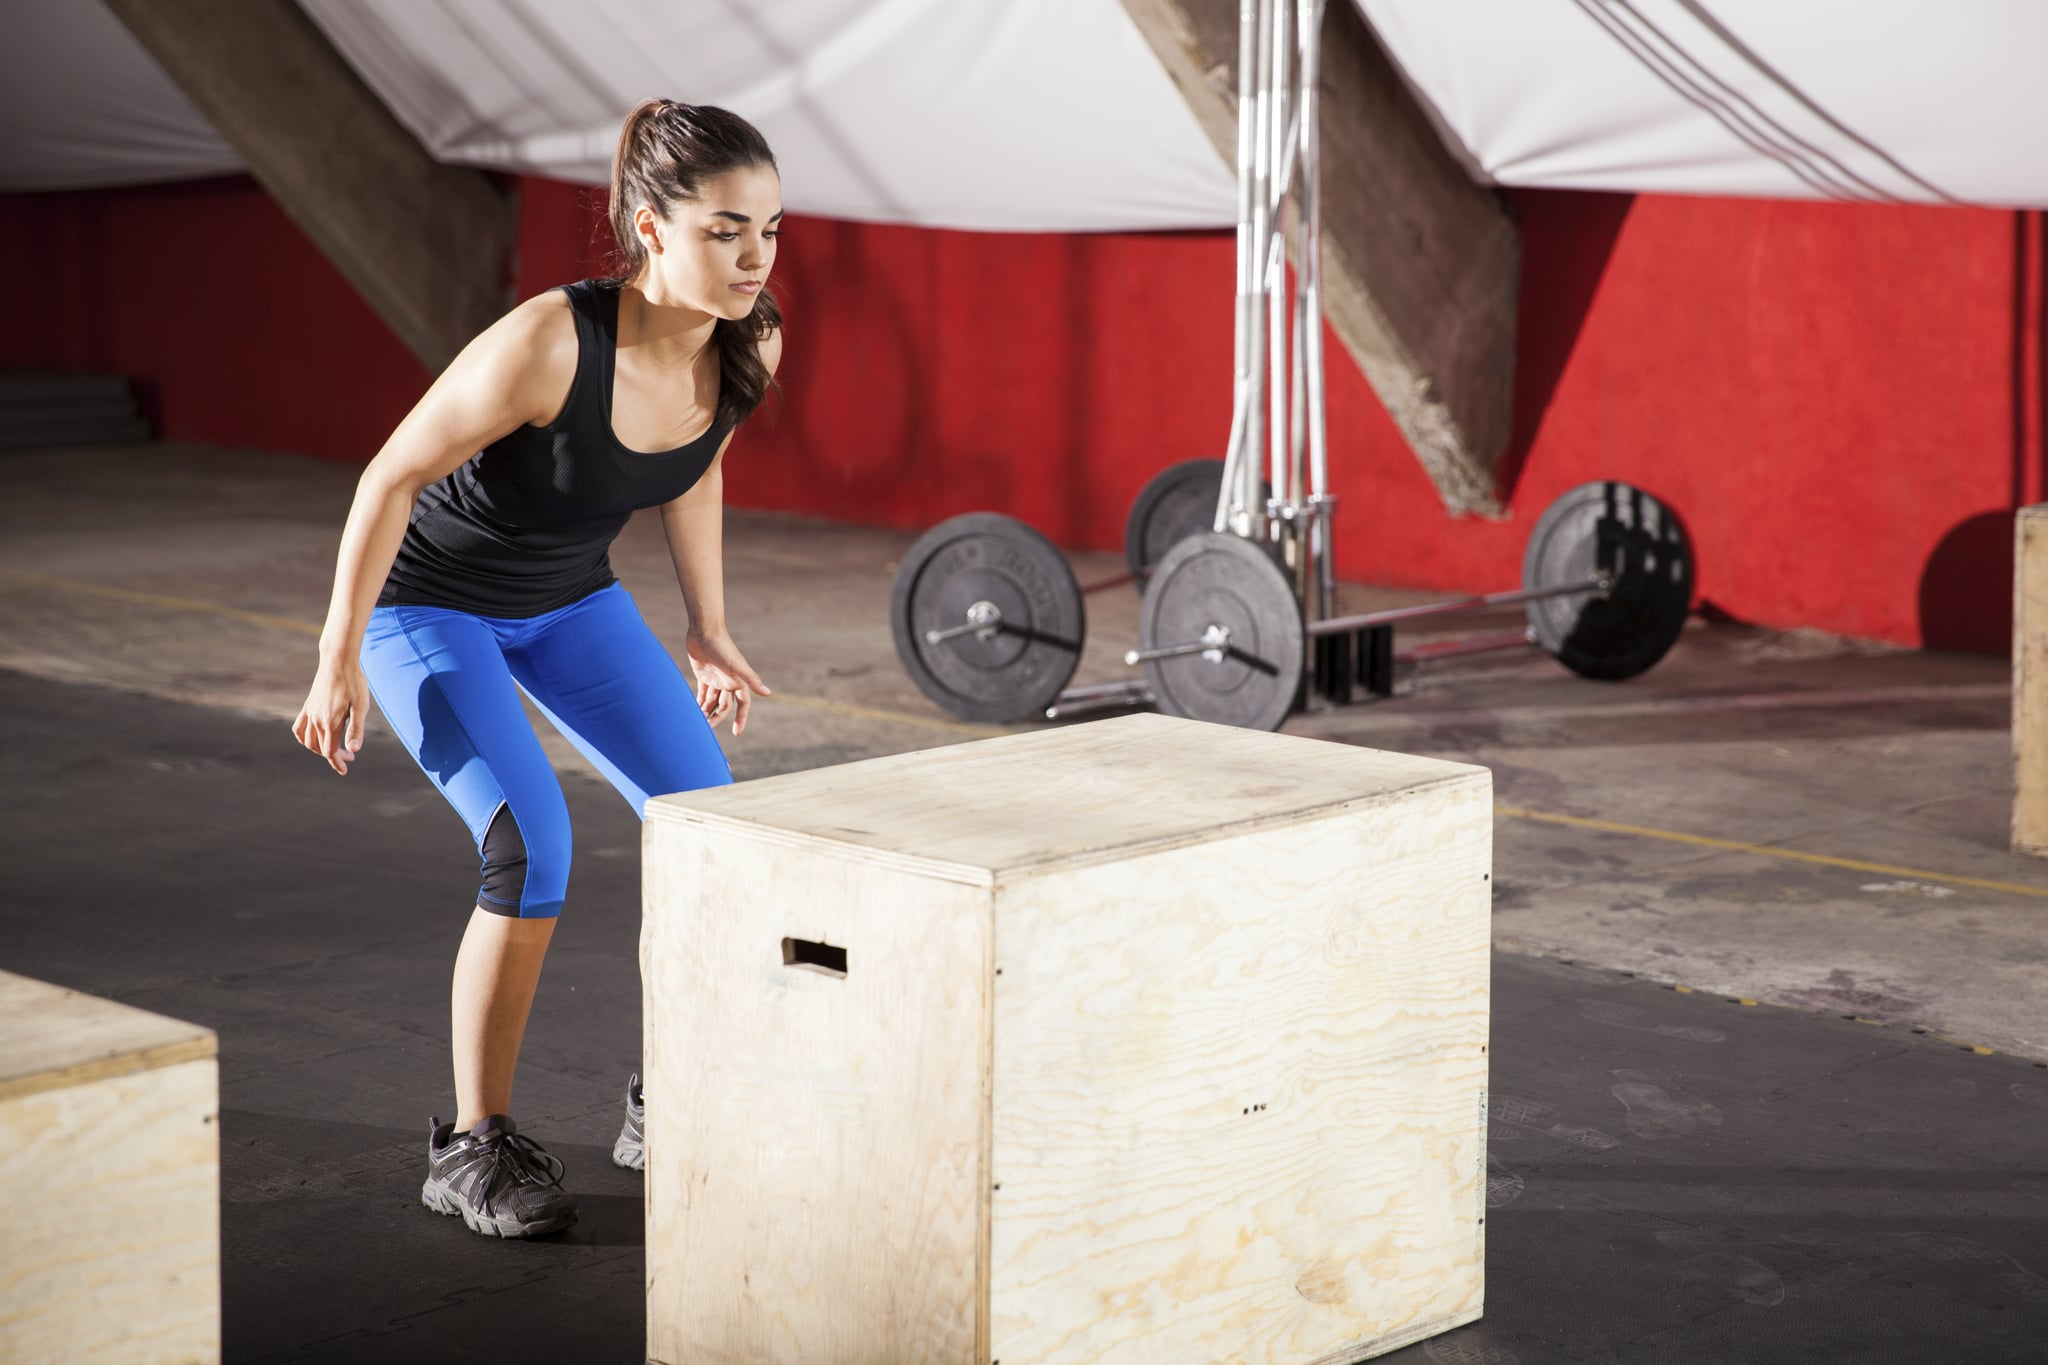 Full Body Crossfit Burpee Variations And Workouts